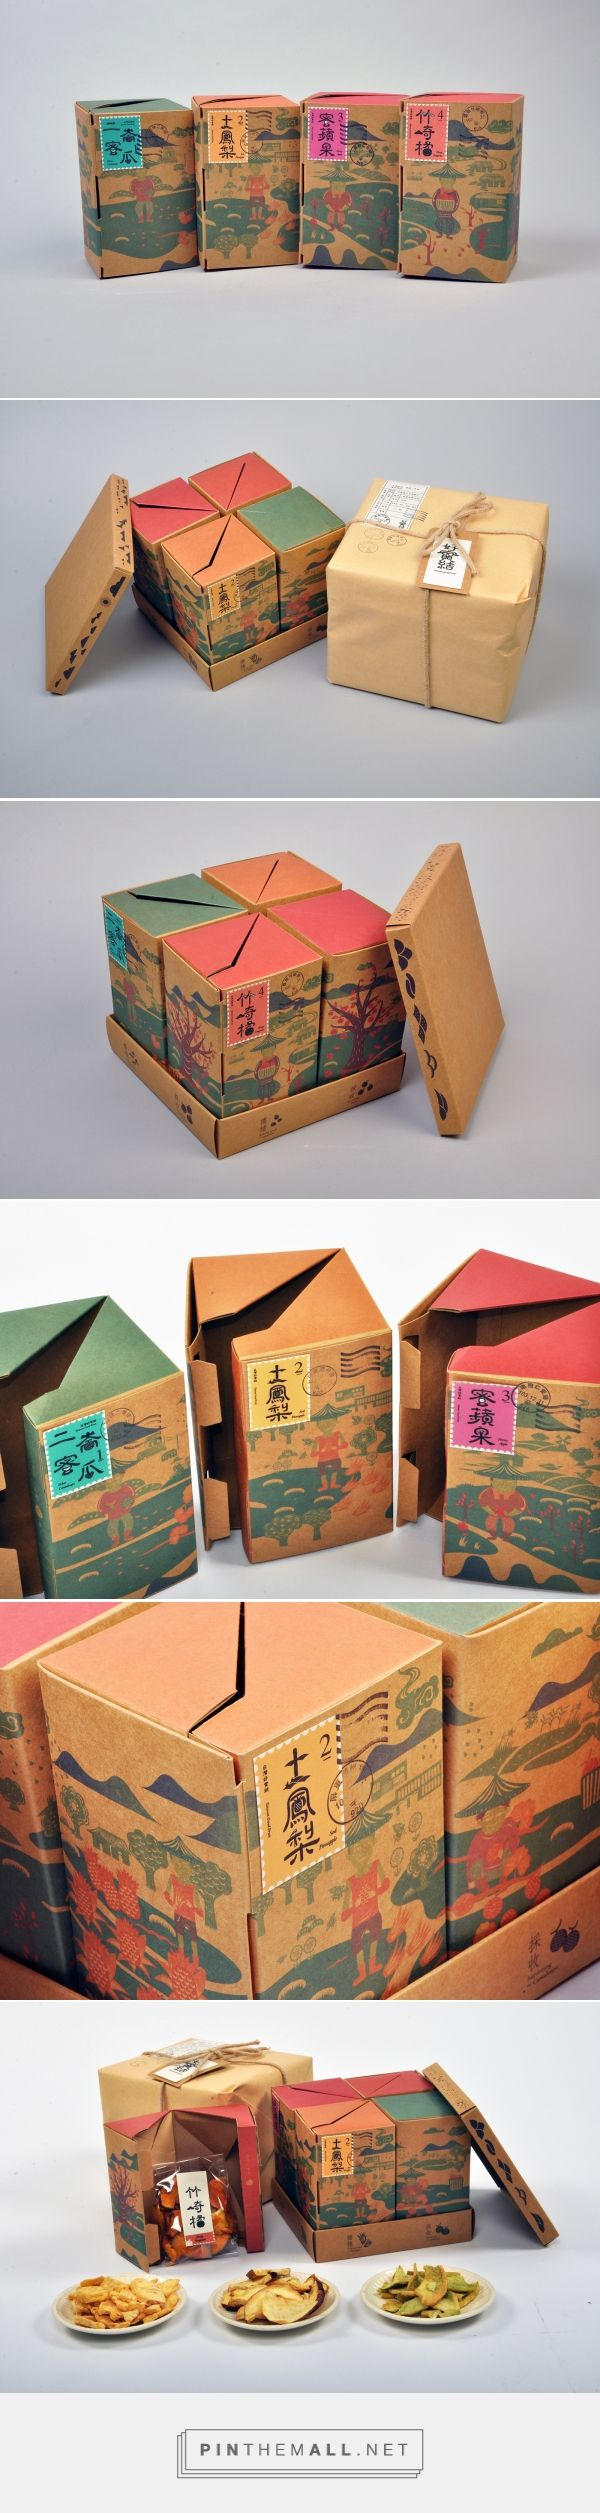 Taiwan good fruit by lee chieh-ting